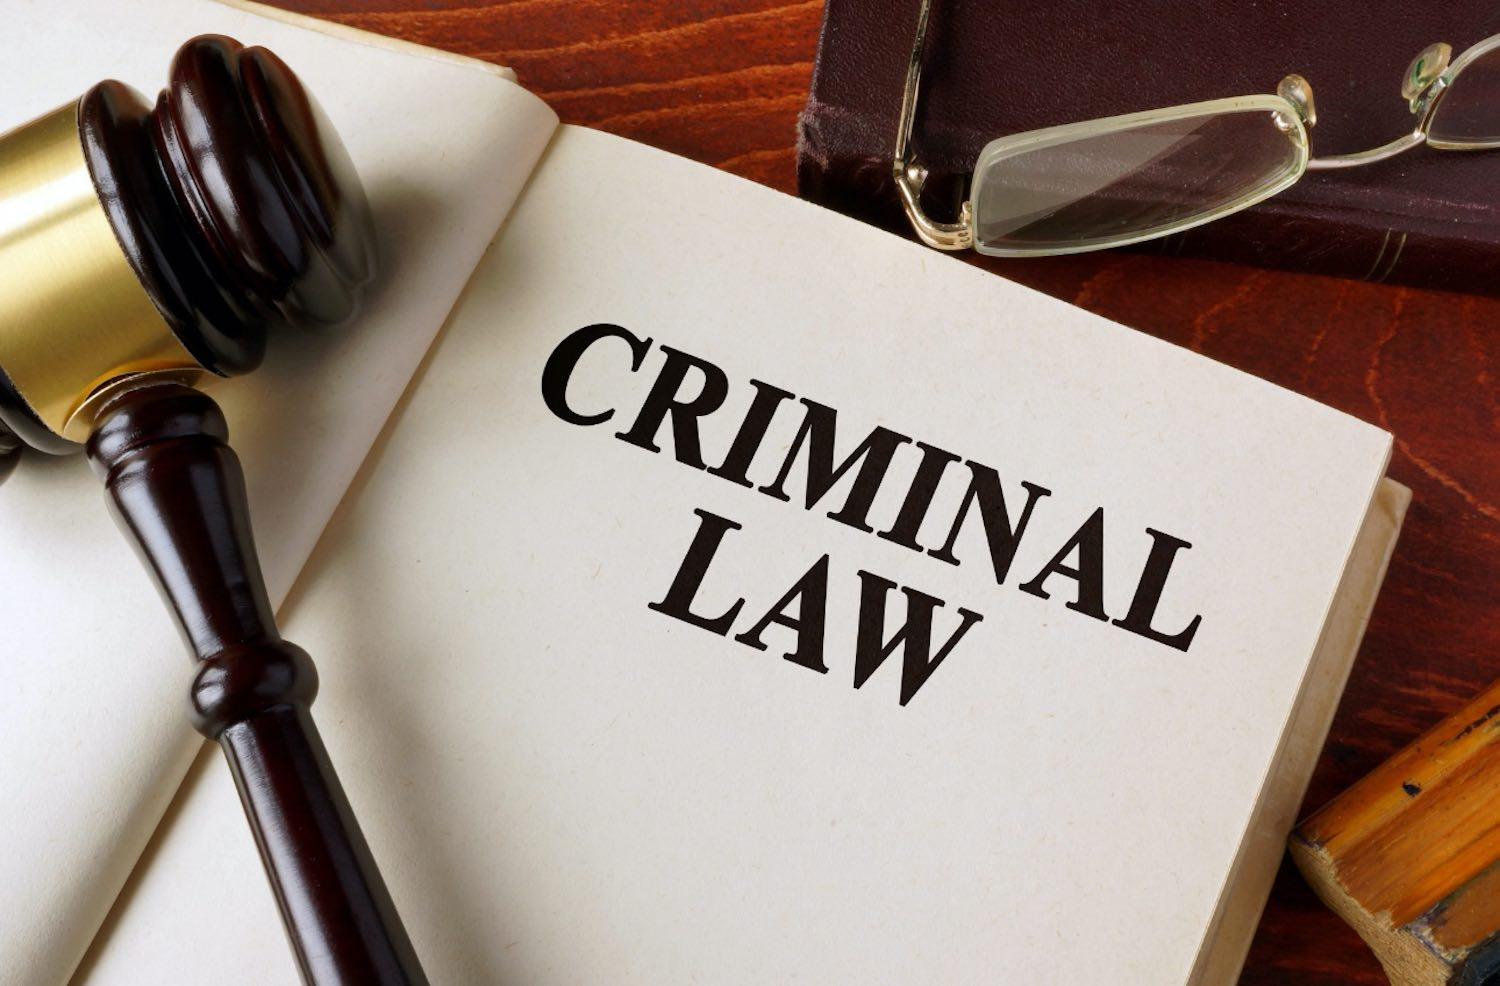 Looking for Criminal Lawyer? Find An Experienced One Right Here!